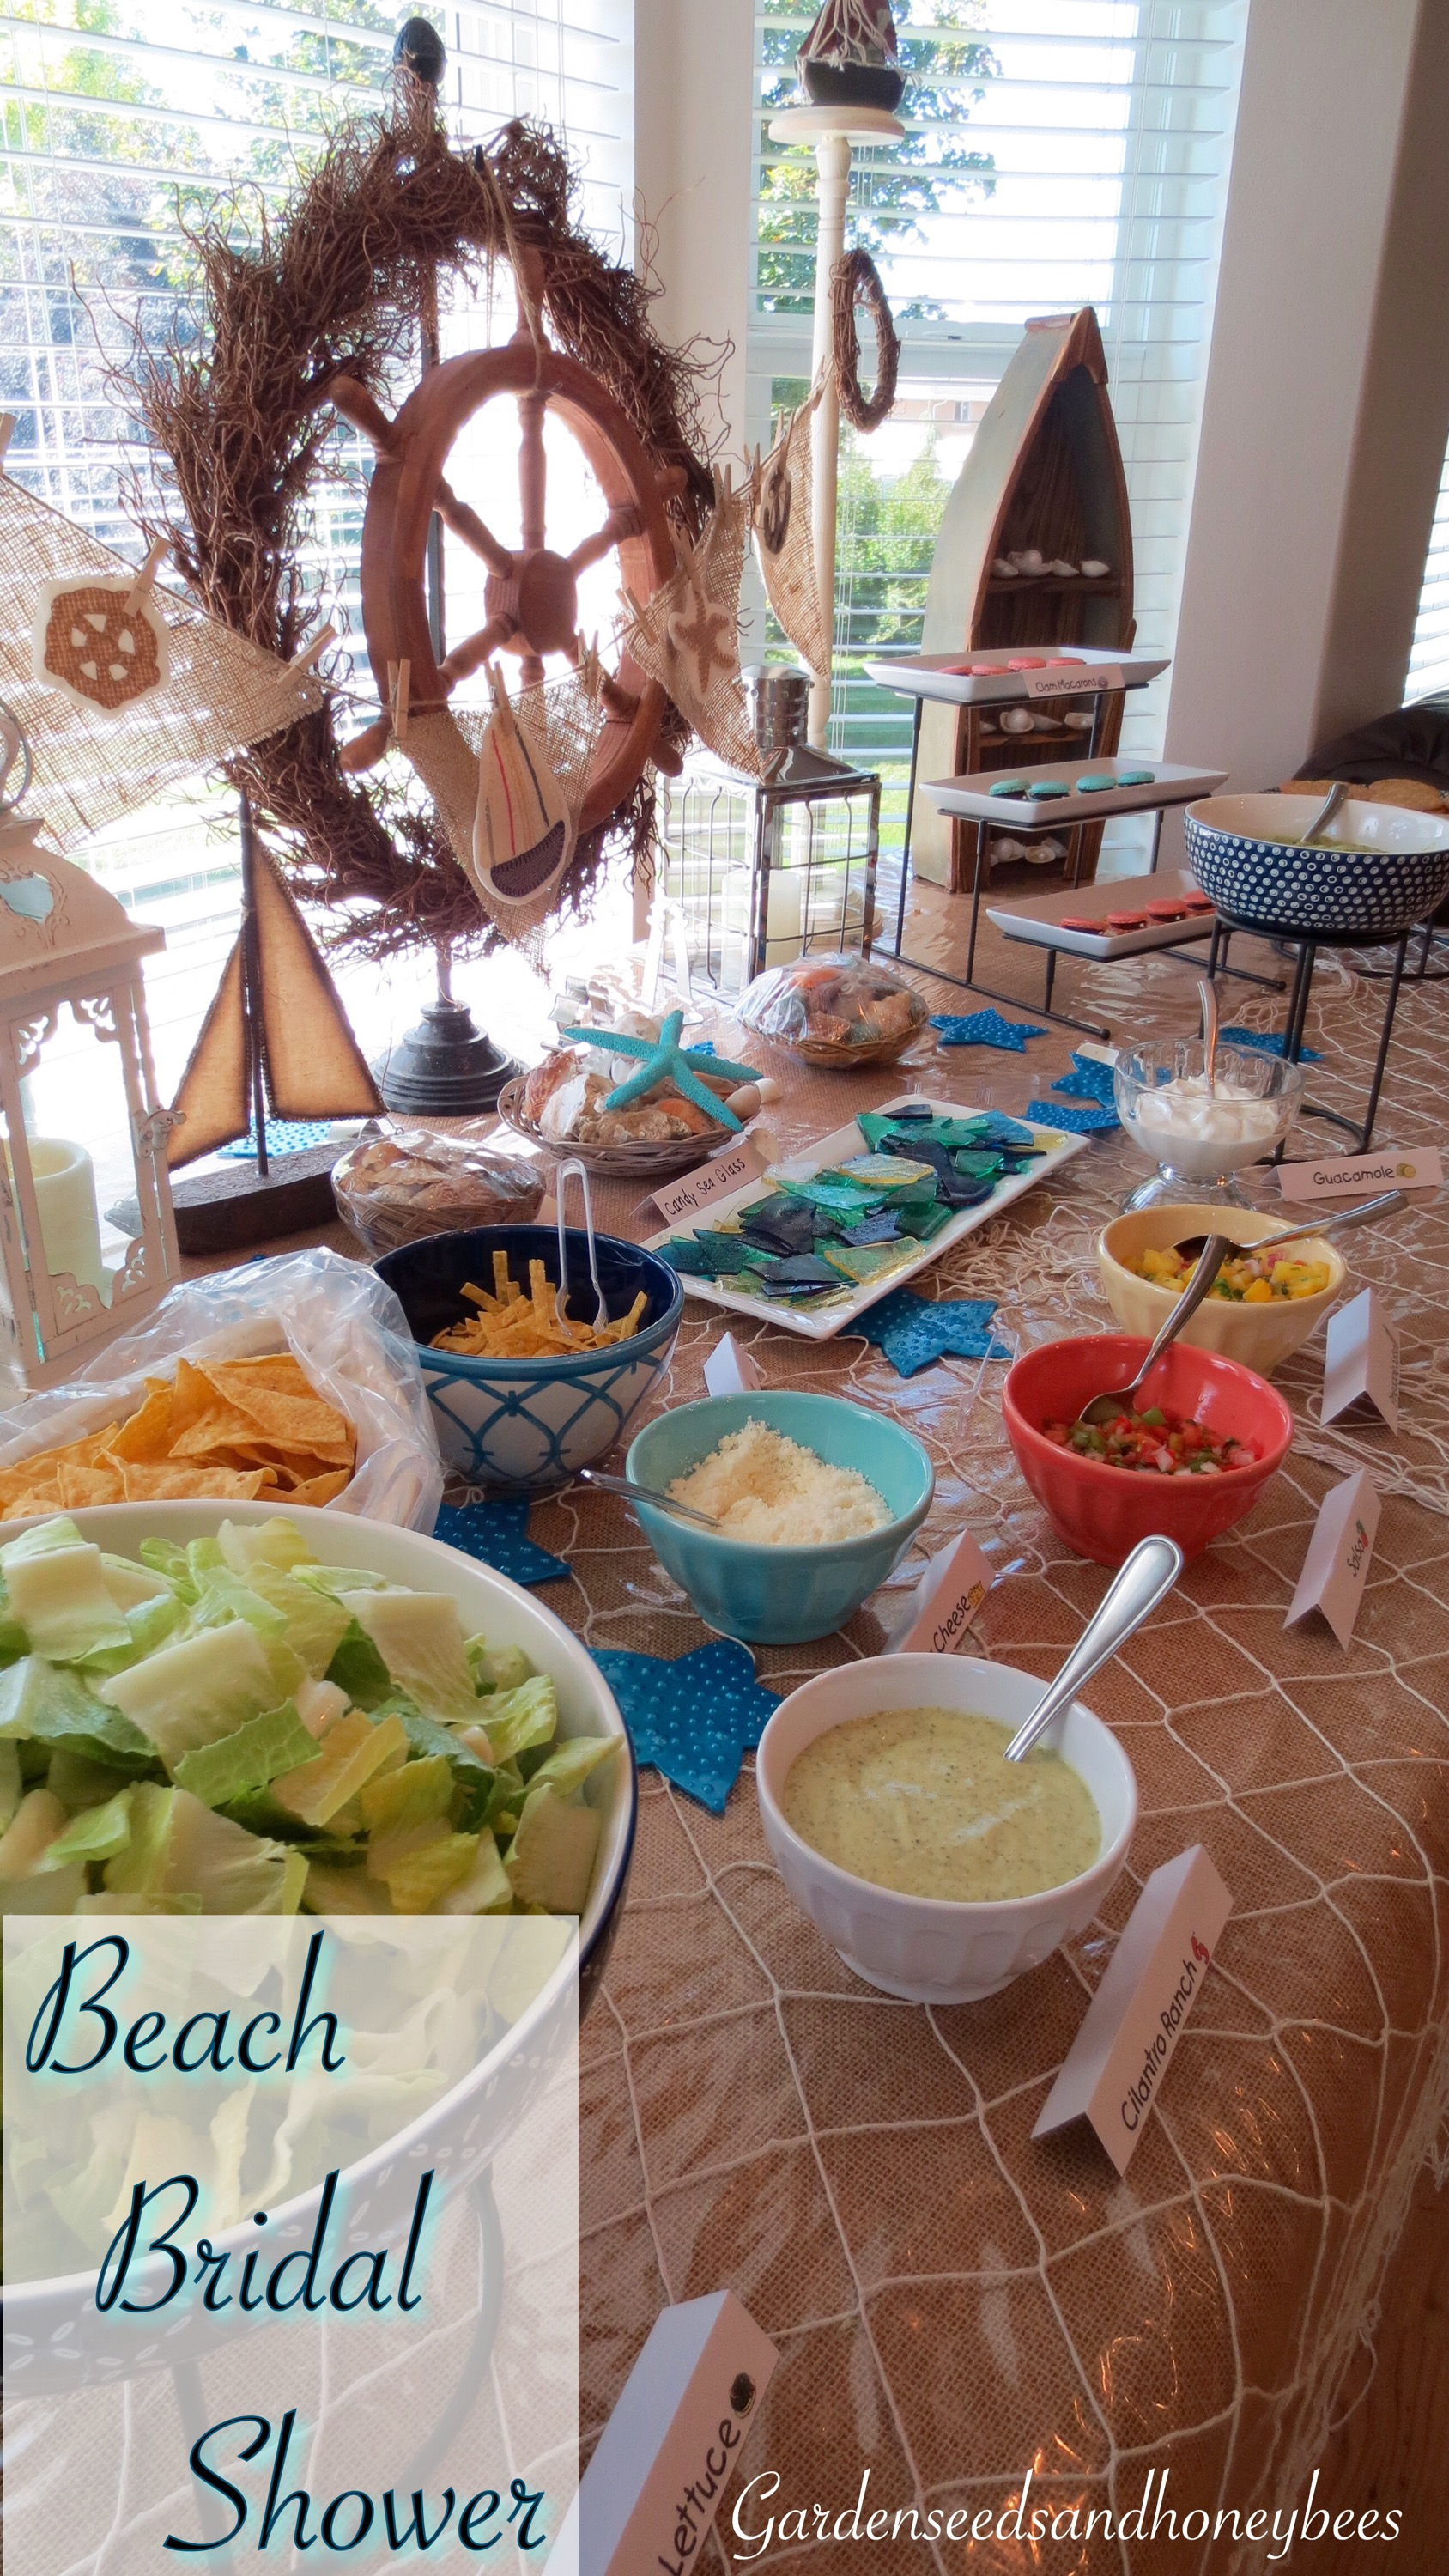 we had a great time at jamies family and friends bridal shower with this beach theme party games and sweet pork burritos and salad